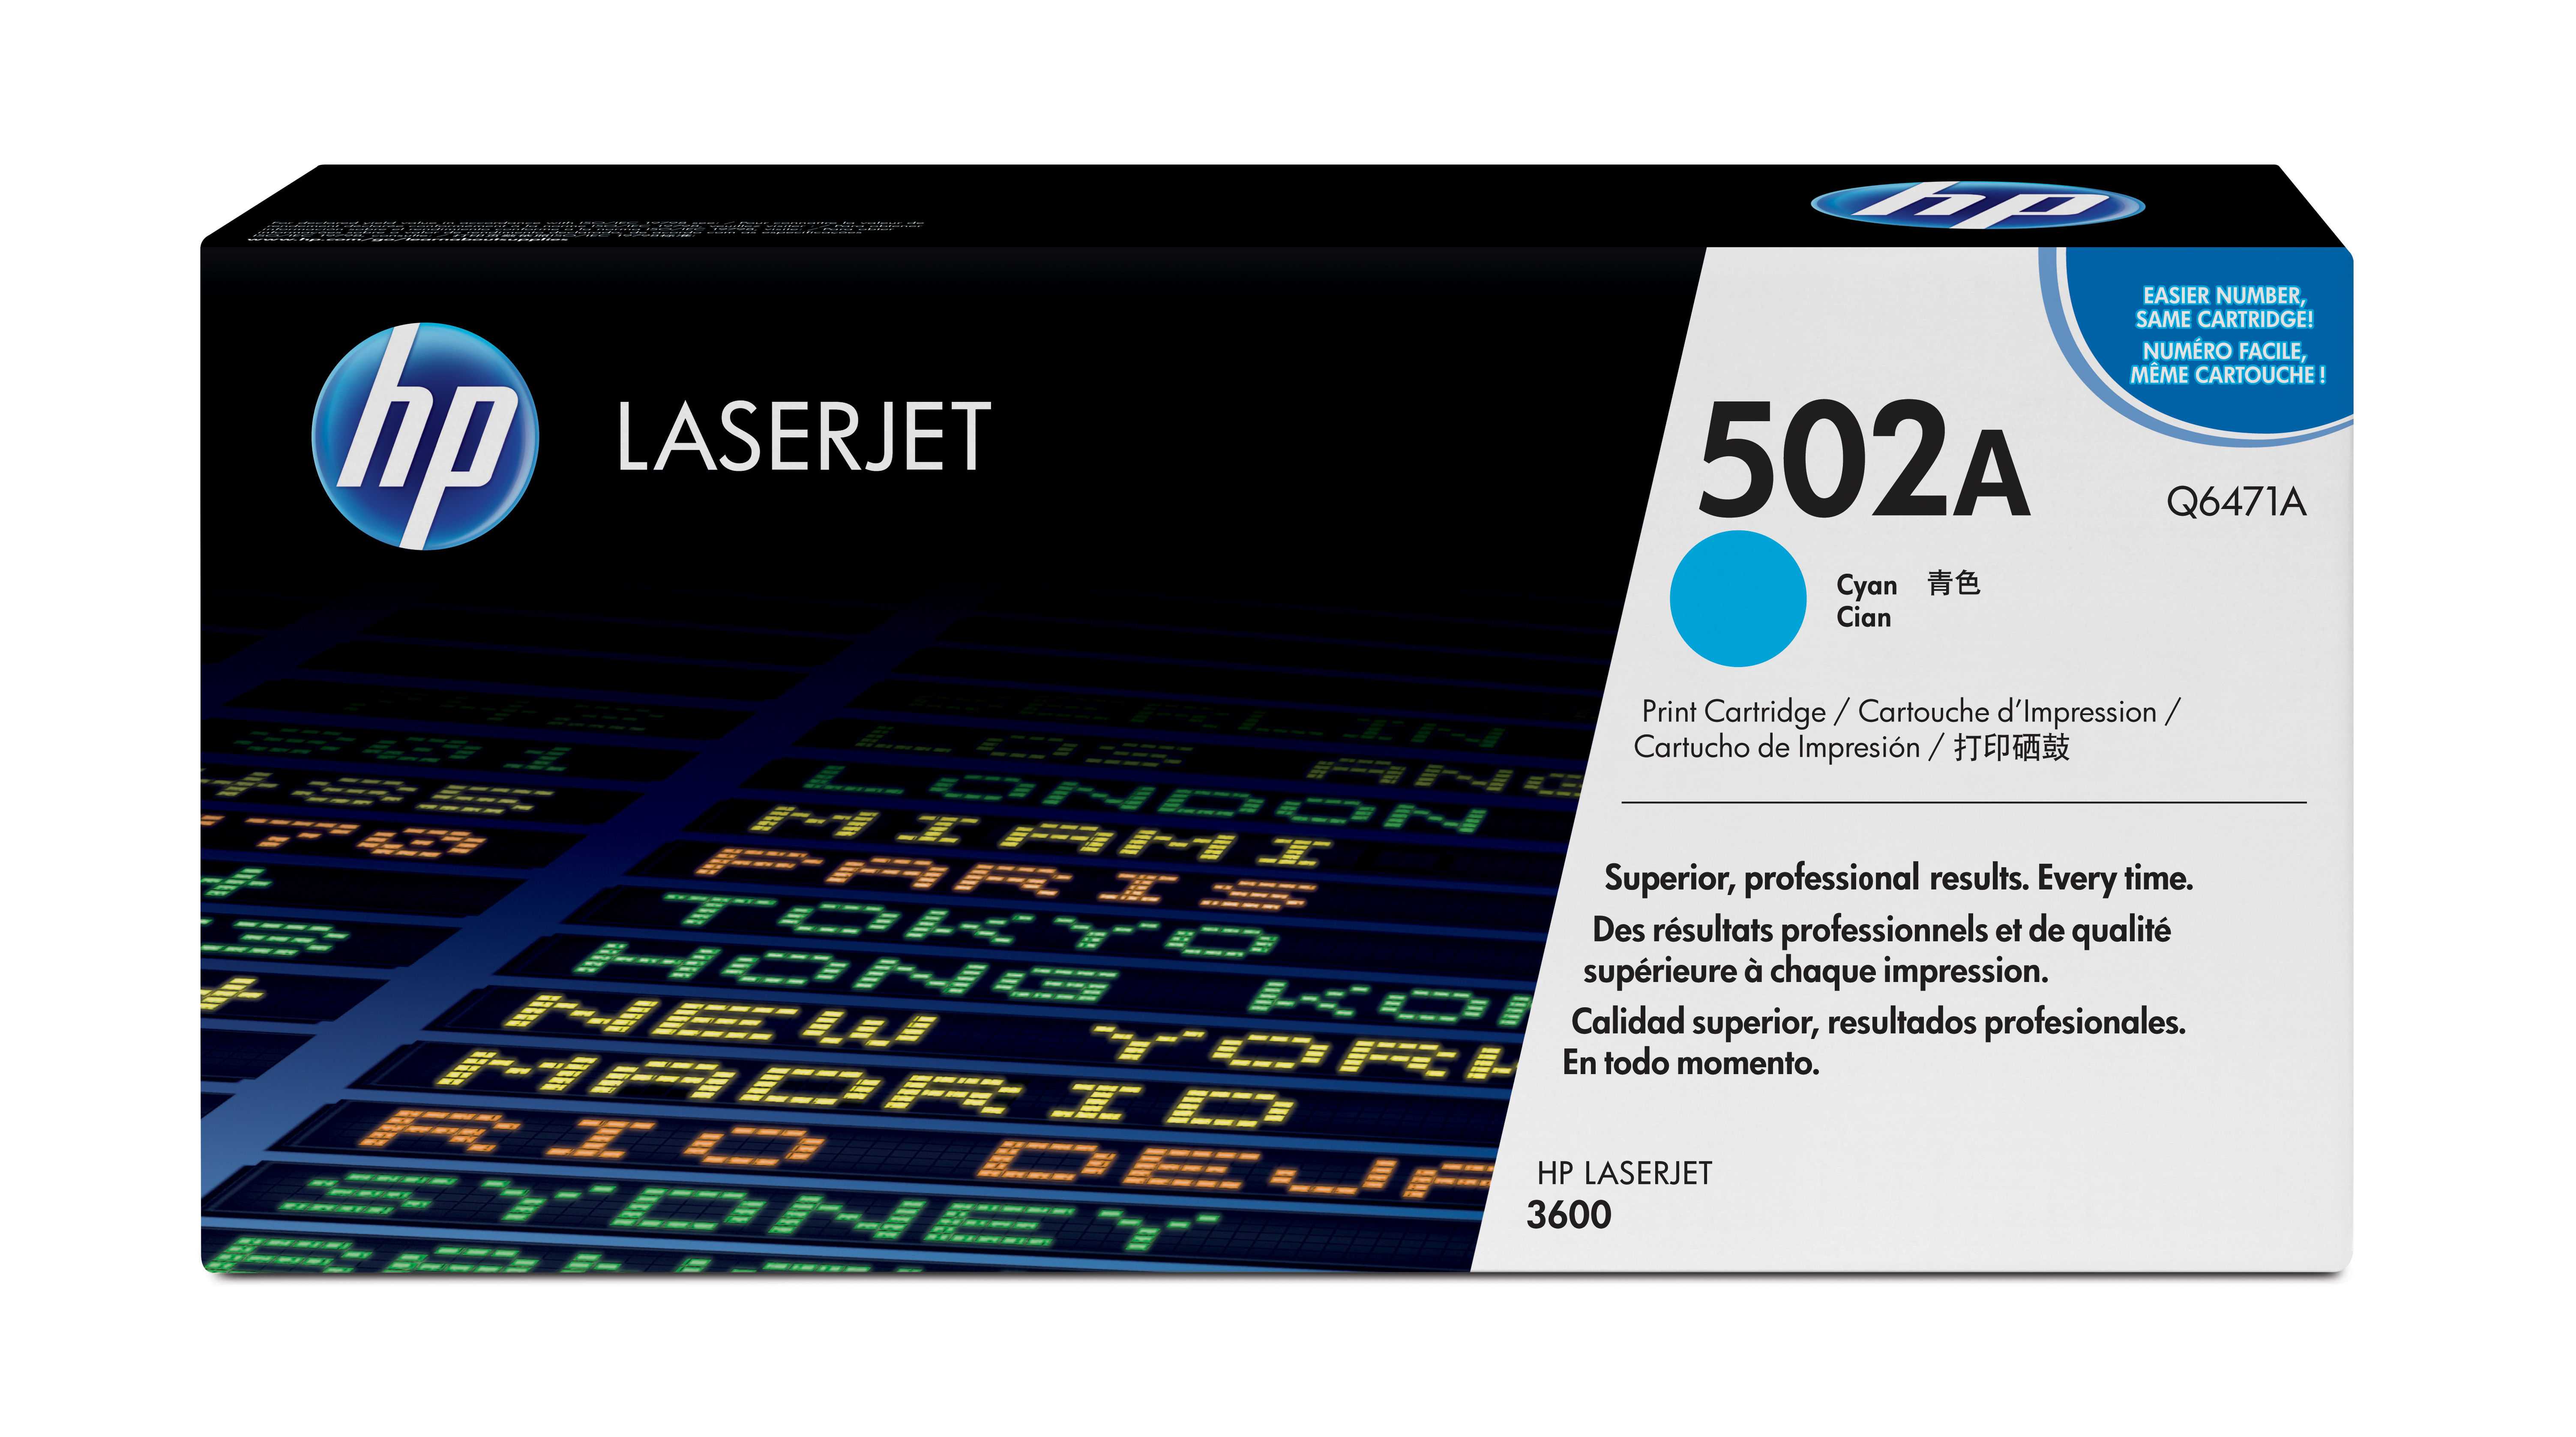 Remanufactured HP Q6471A Toner Cartridge Cyan 4K Q6471A - rem01